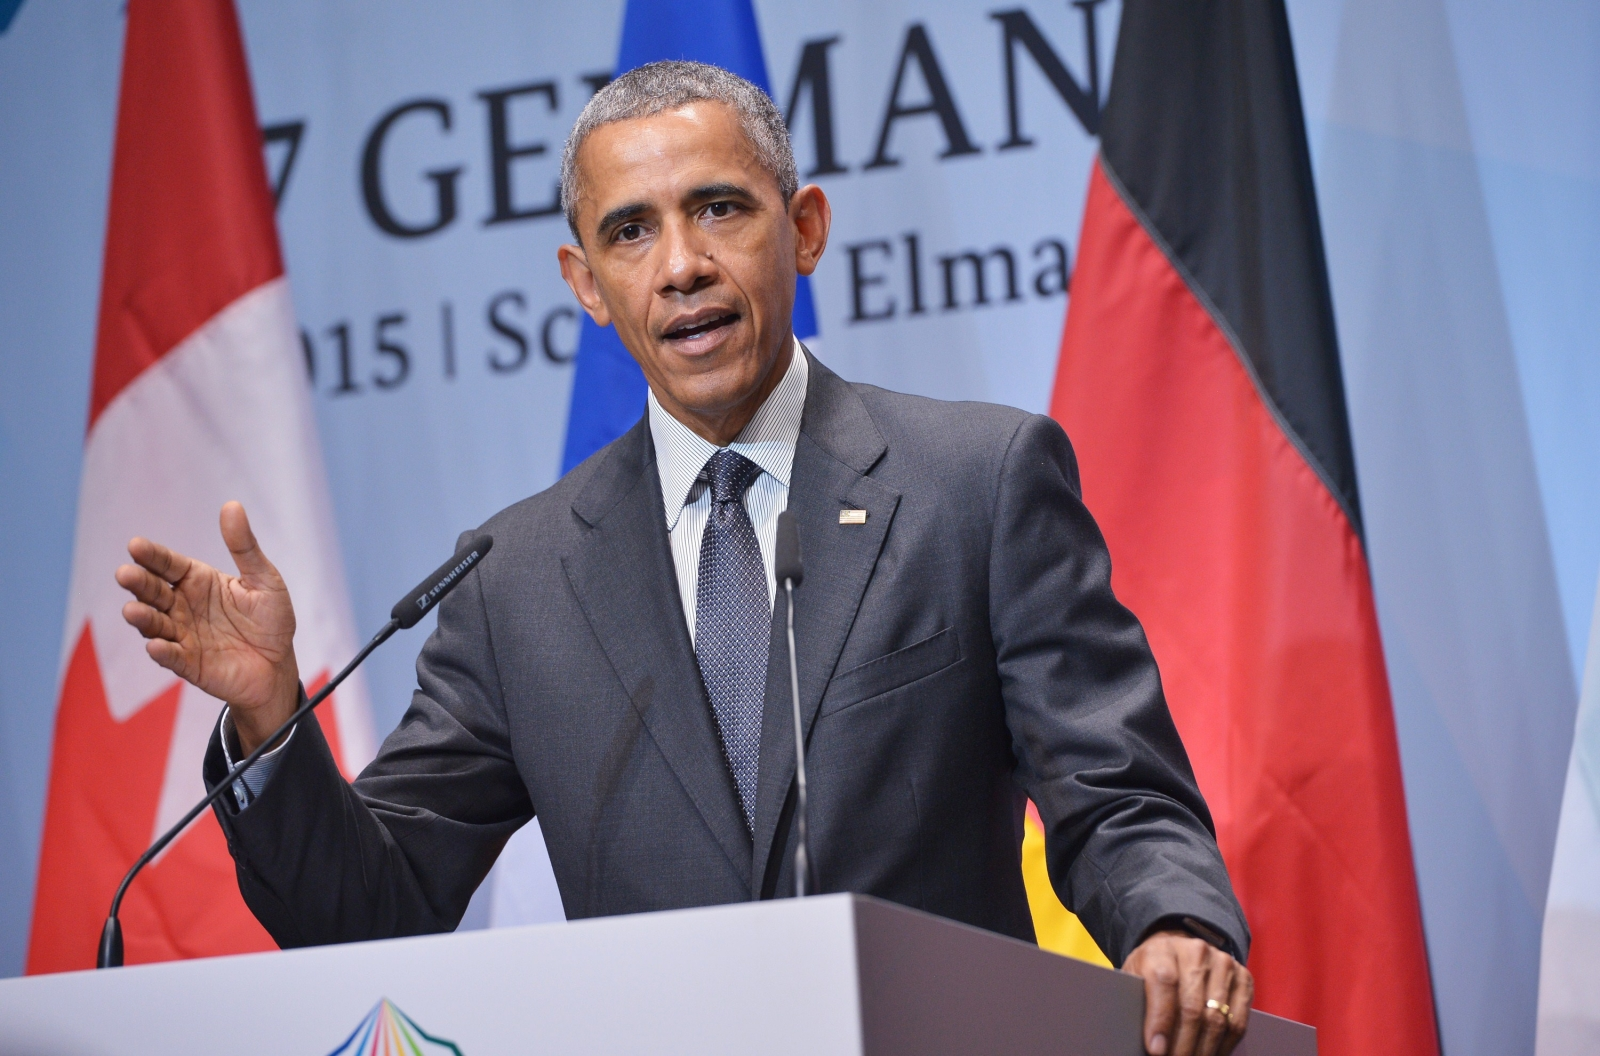 Barack Obama at the 2015 G7